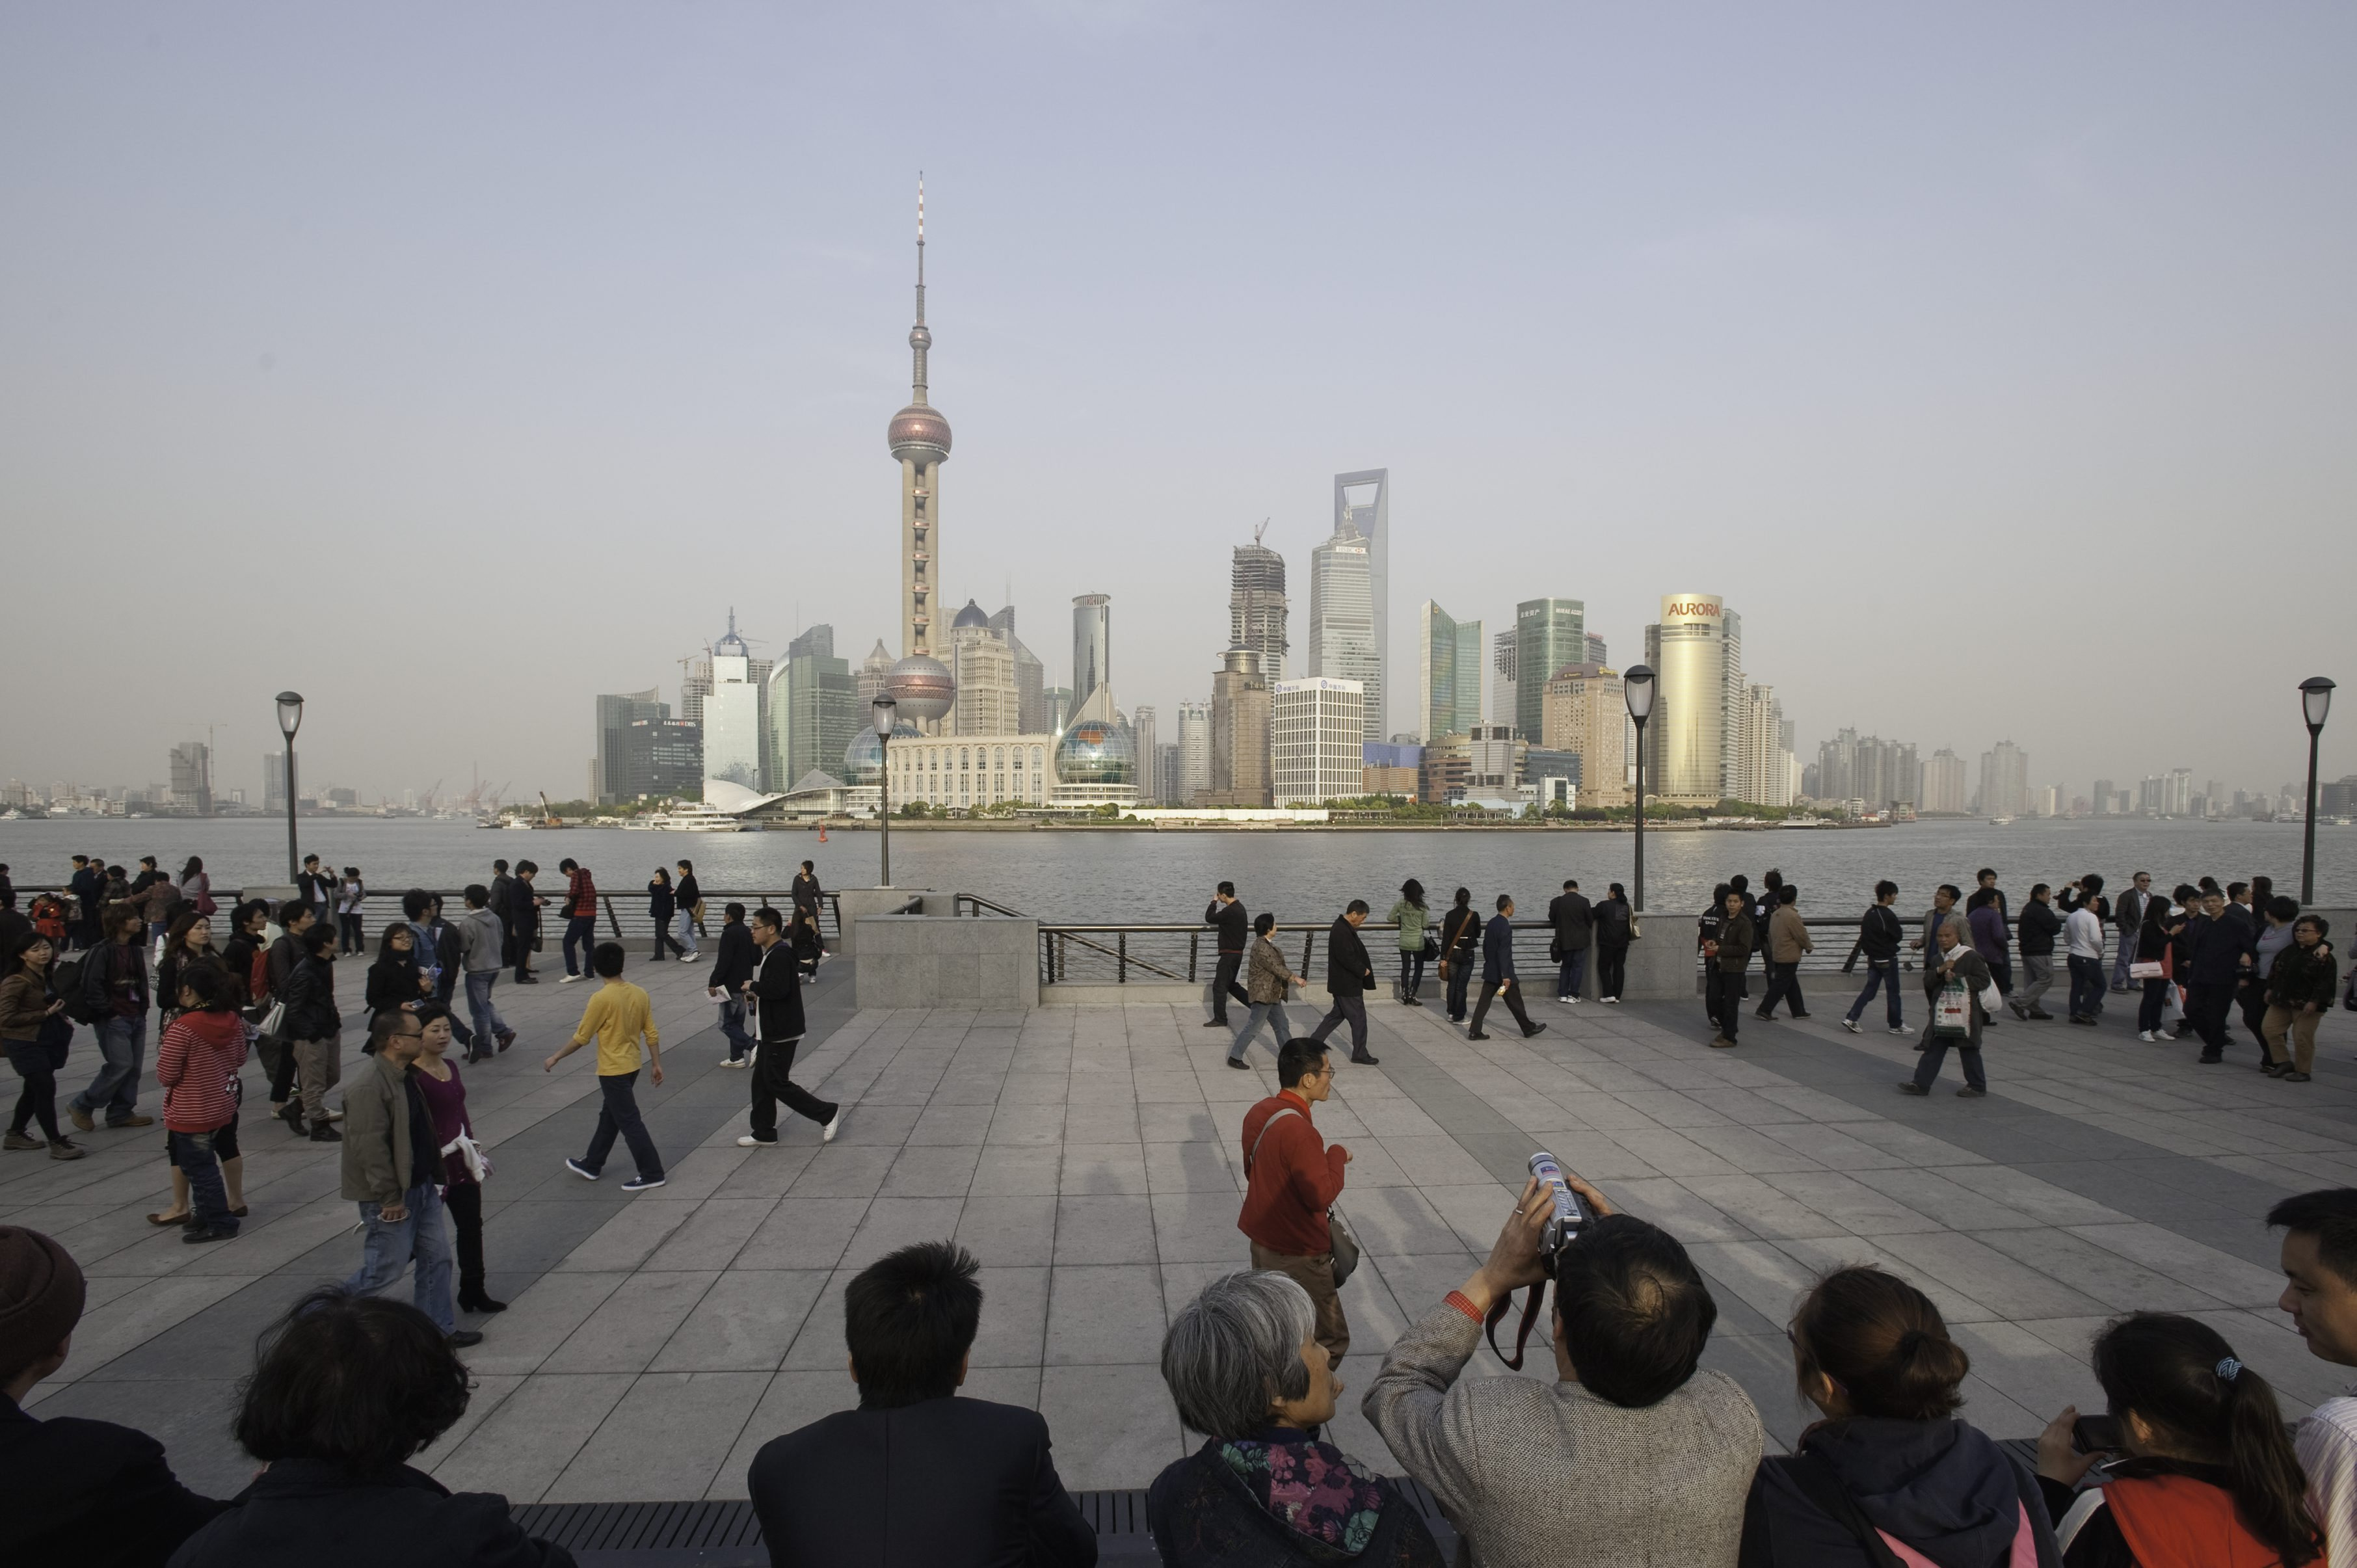 If China's rapidly growing debt bubble bursts, it could threaten an already teetering global economy